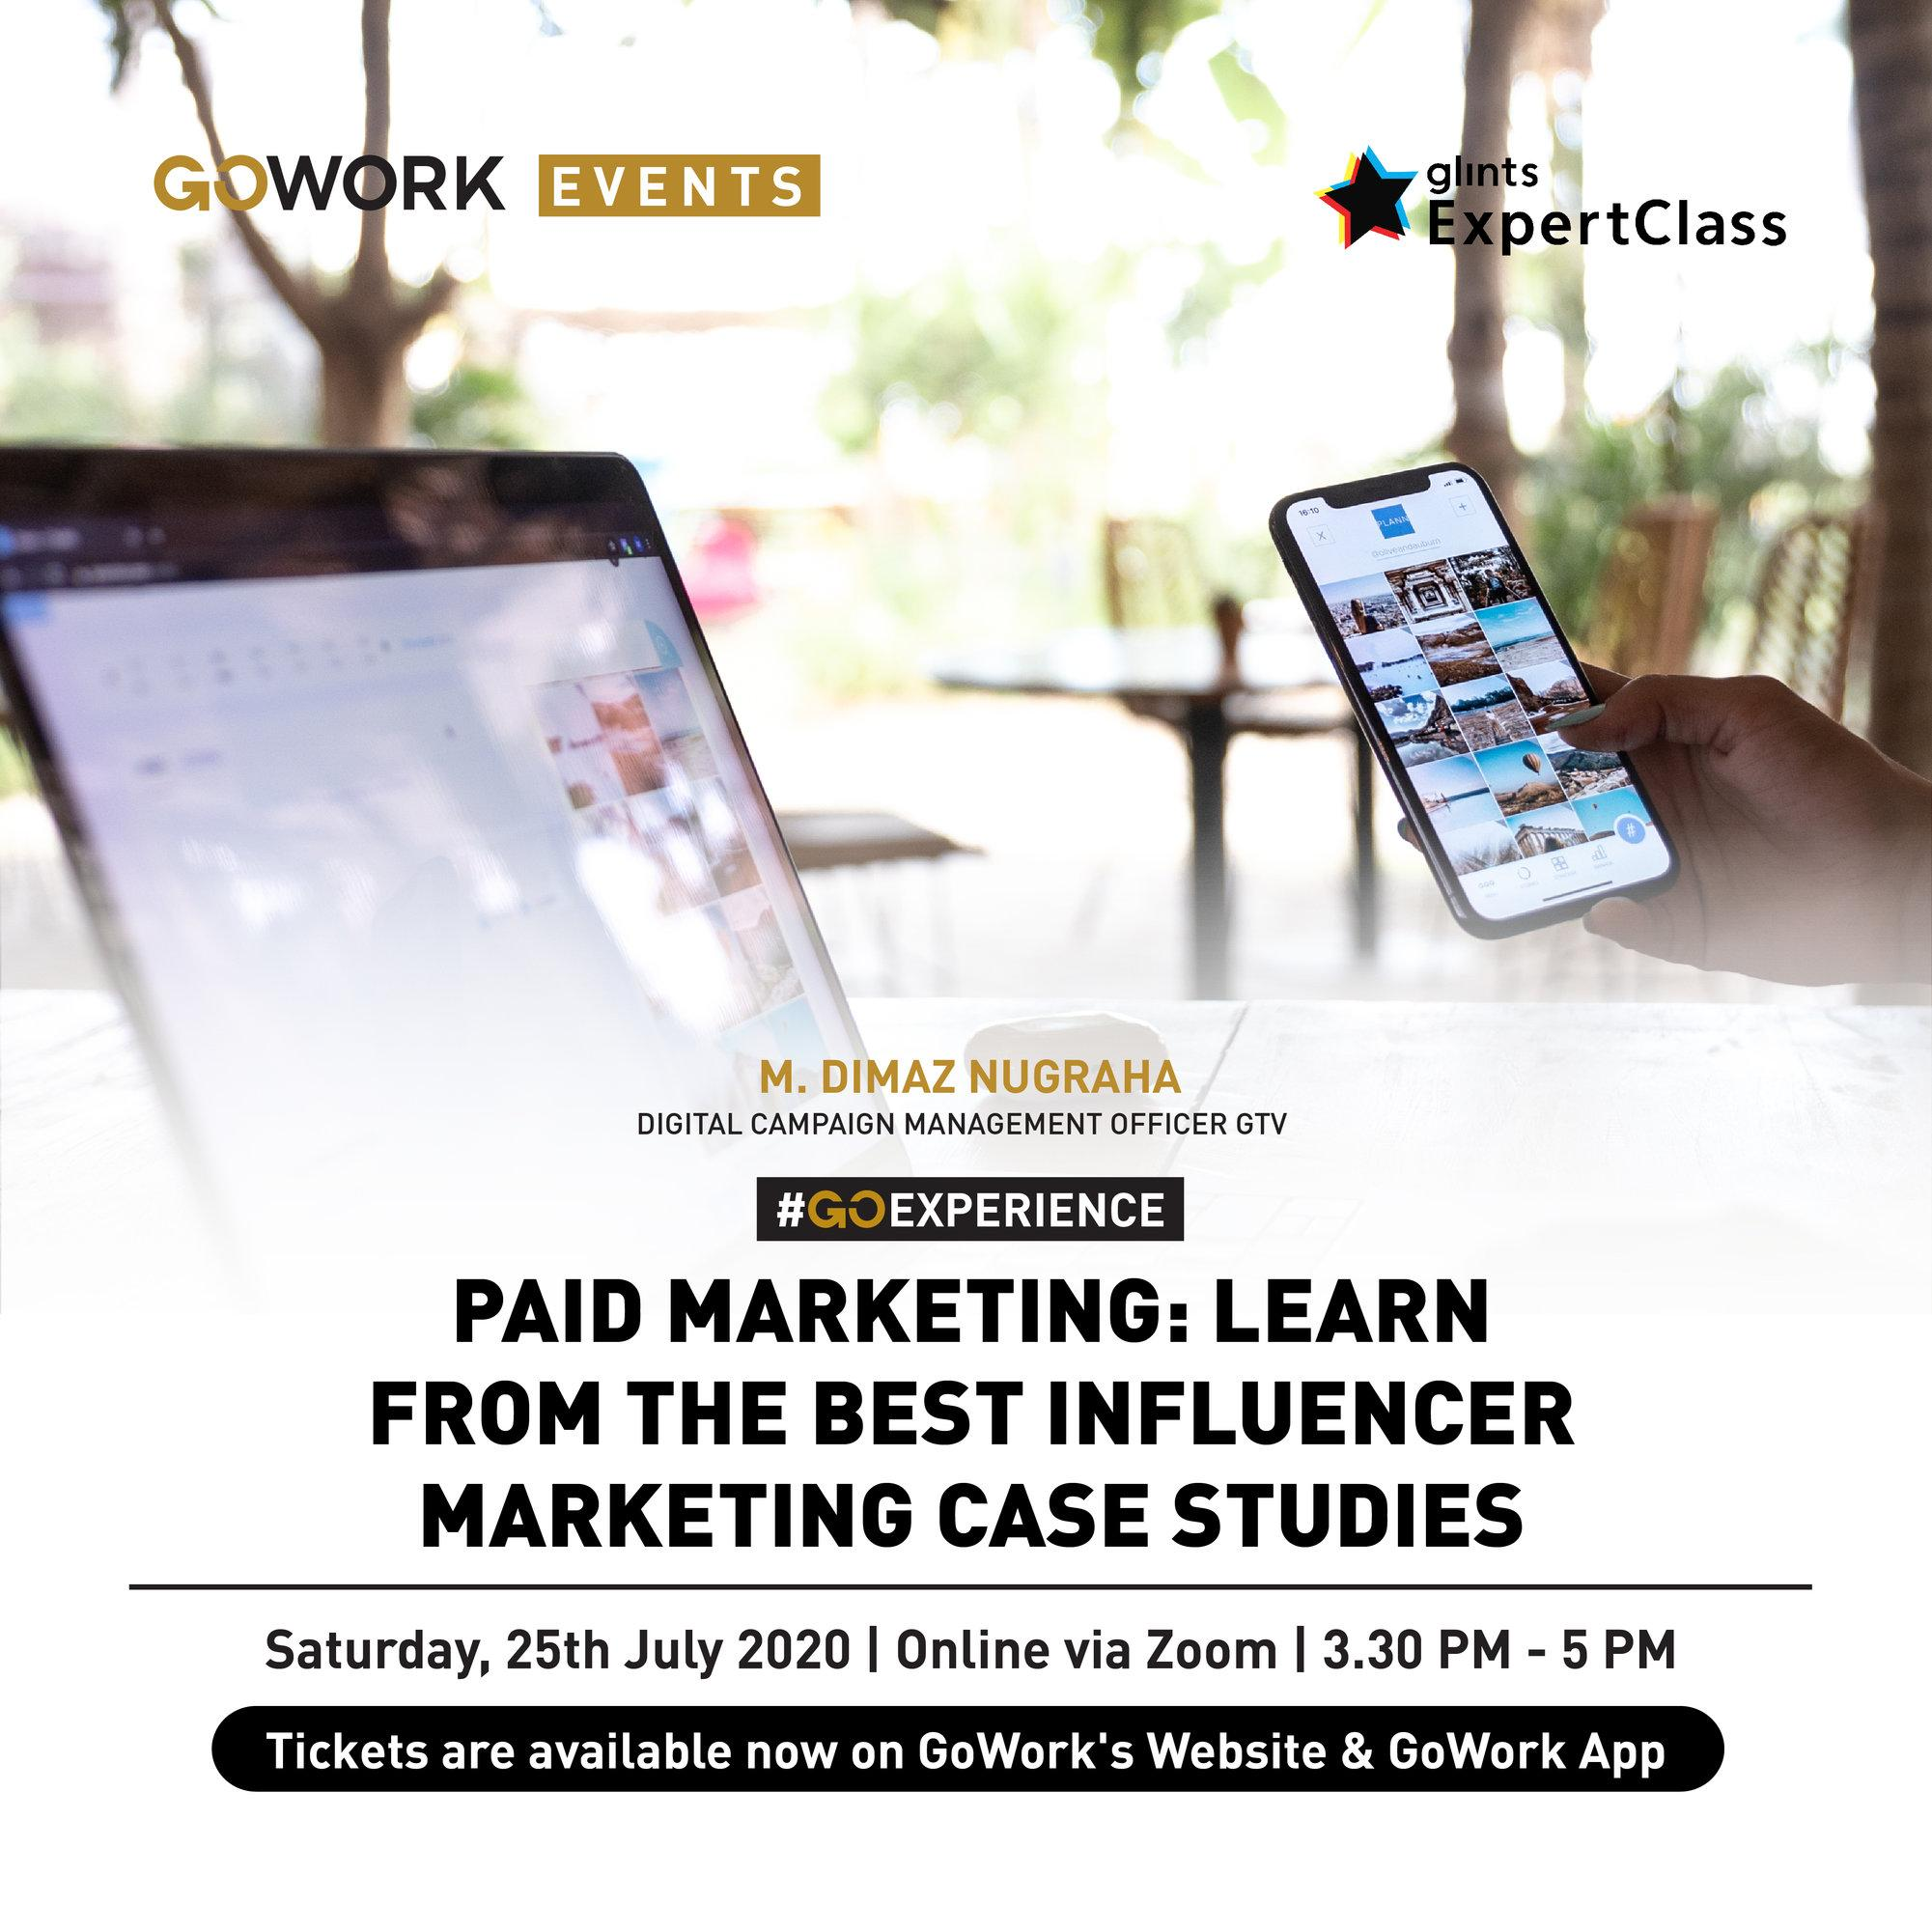 Learn From The Best Influencer Marketing Case Studies